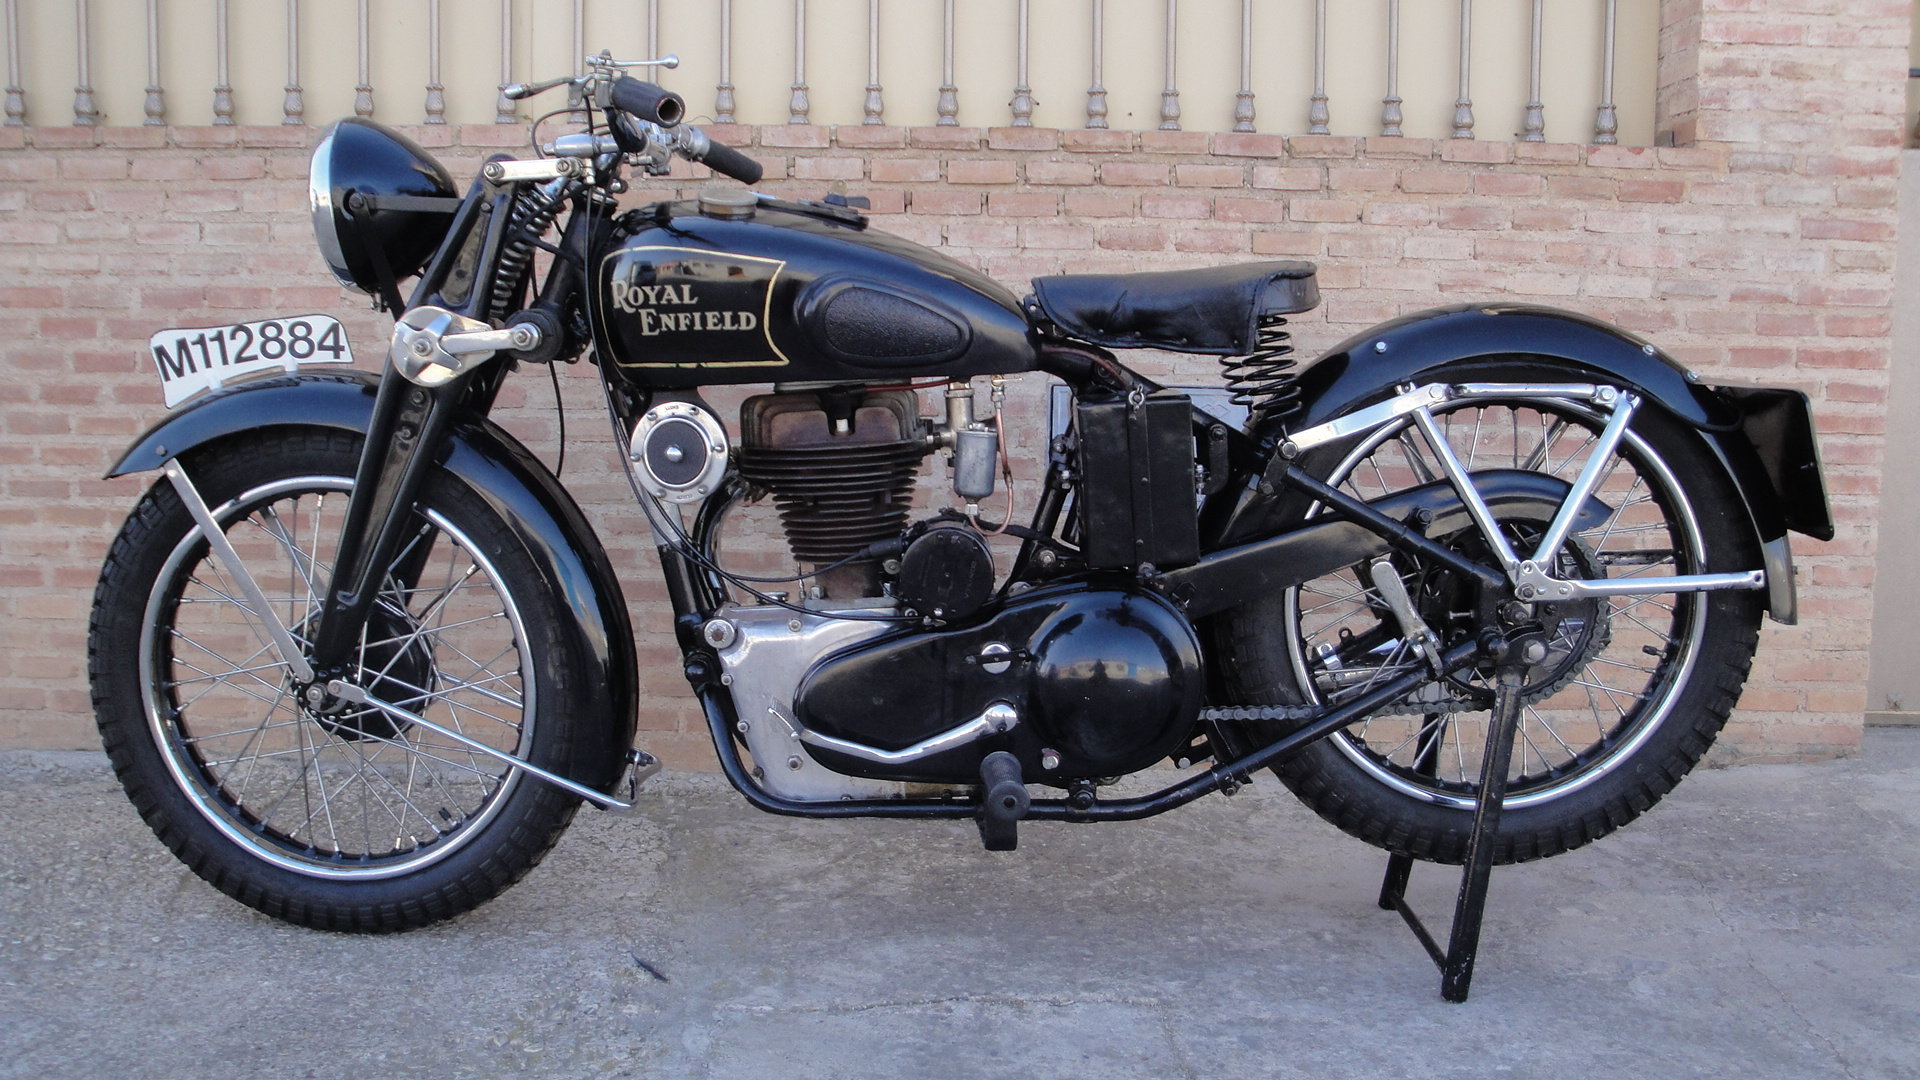 ROYAL ENFIELD J 500 OHV COMBINATION YEAR 1936 For Sale (picture 1 of 6)